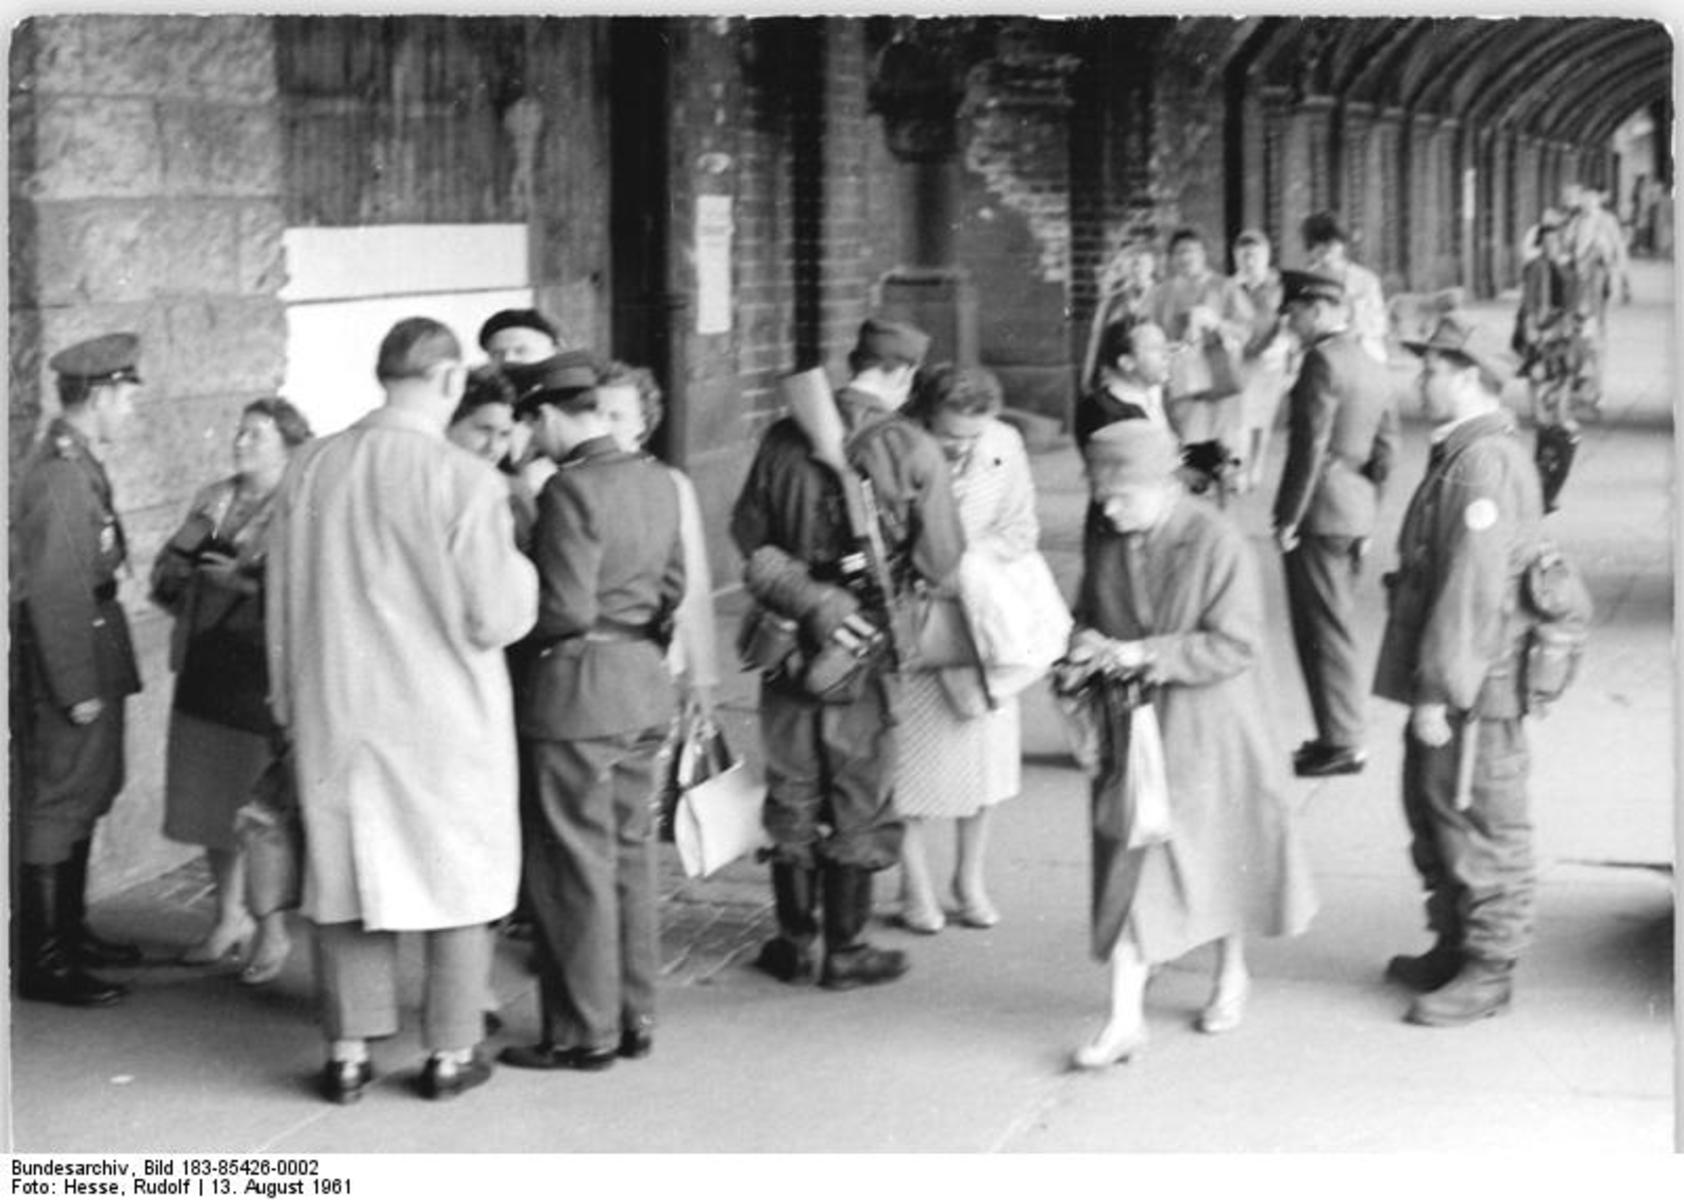 Bundesarchiv_Bild_183-85426-0002,_Berlin,_Mauerbau,_Oberbaumbrücke.jpg